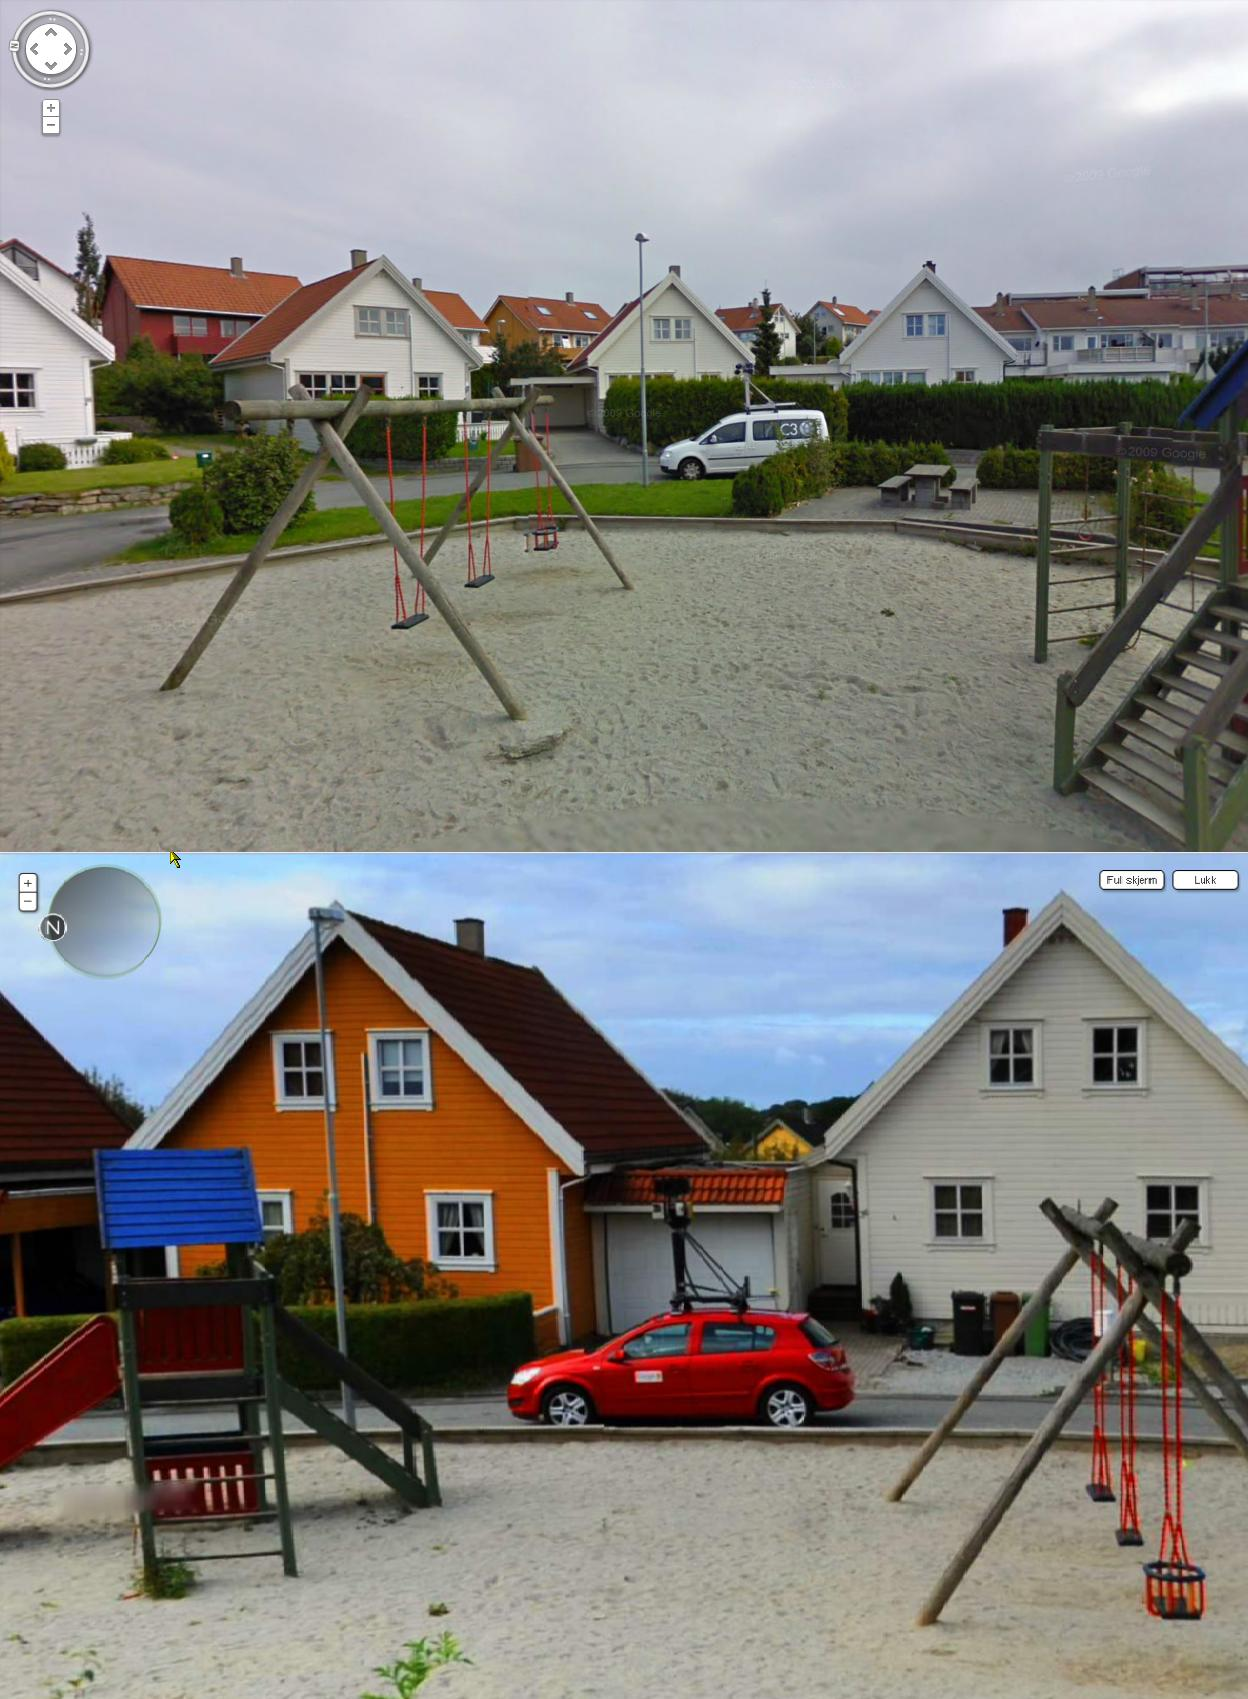 Google Street View Captures the Competition and Vice Versa